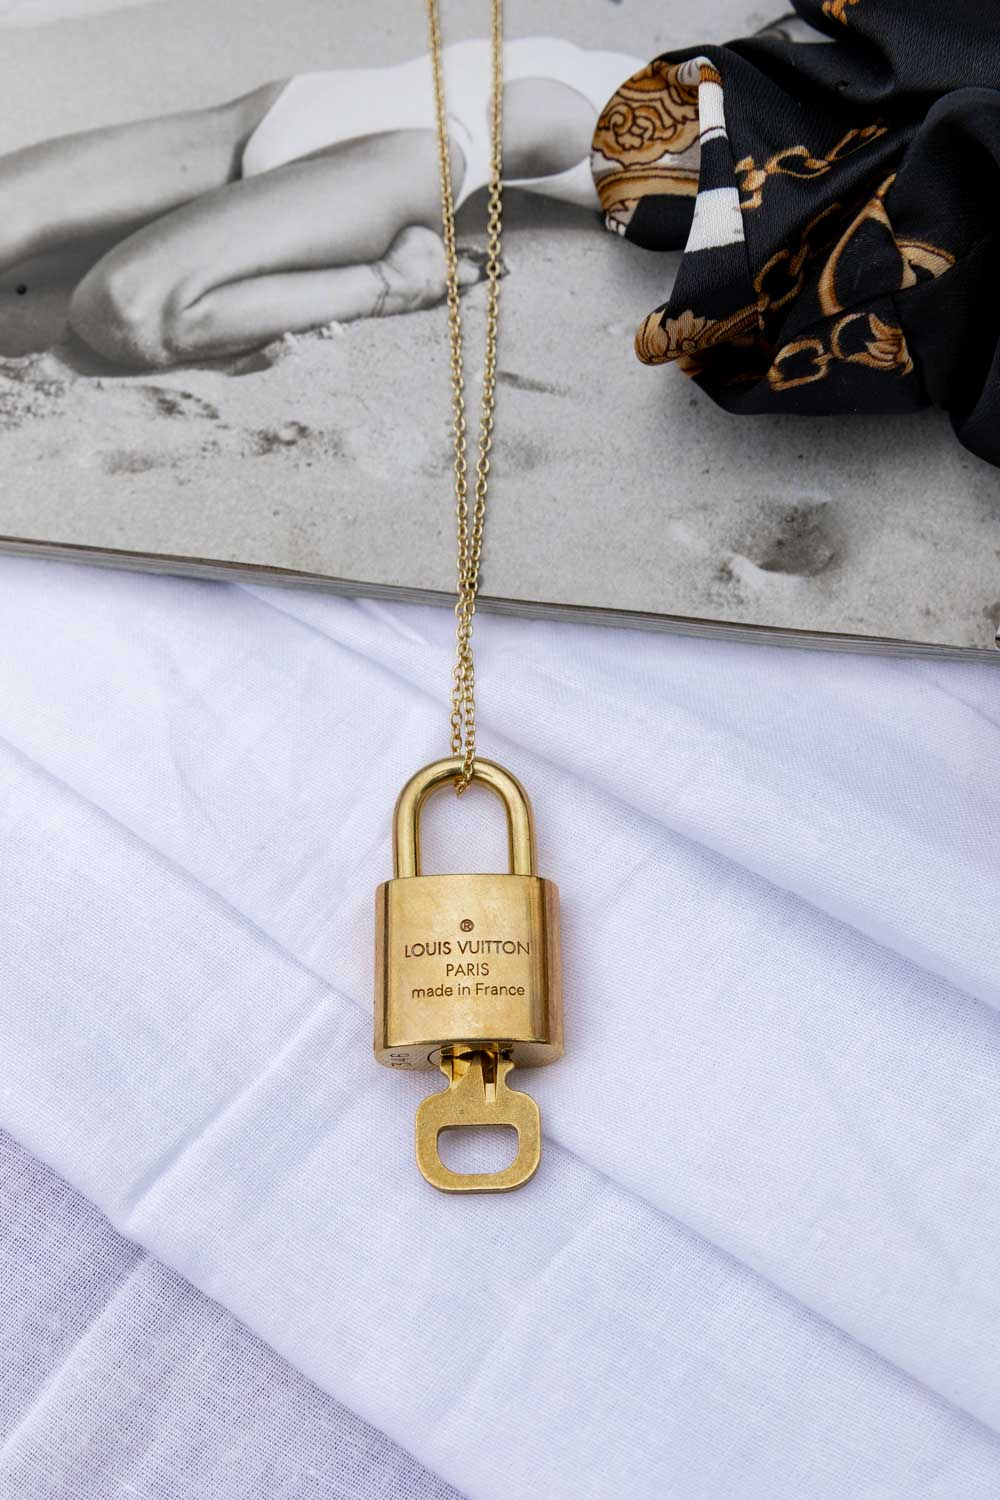 T(H)ORN VINTAGE: Vintage Louis Vuitton Lock Necklace